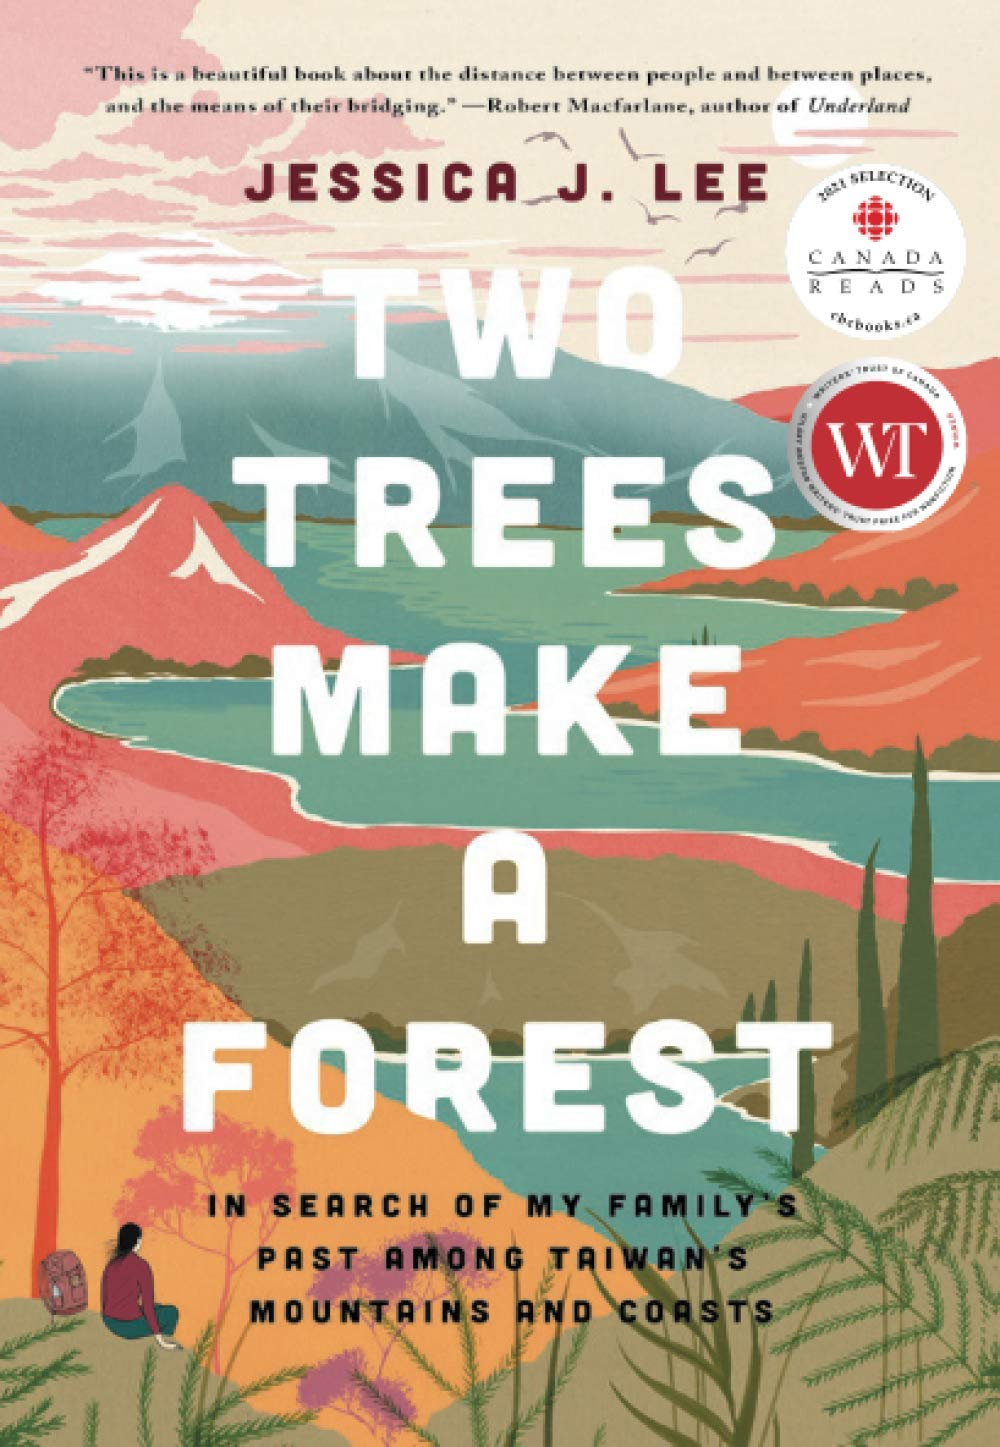 Two Trees Make a Forest: Travels Among Taiwan's Mountains & Coasts in Search of My Family's Past